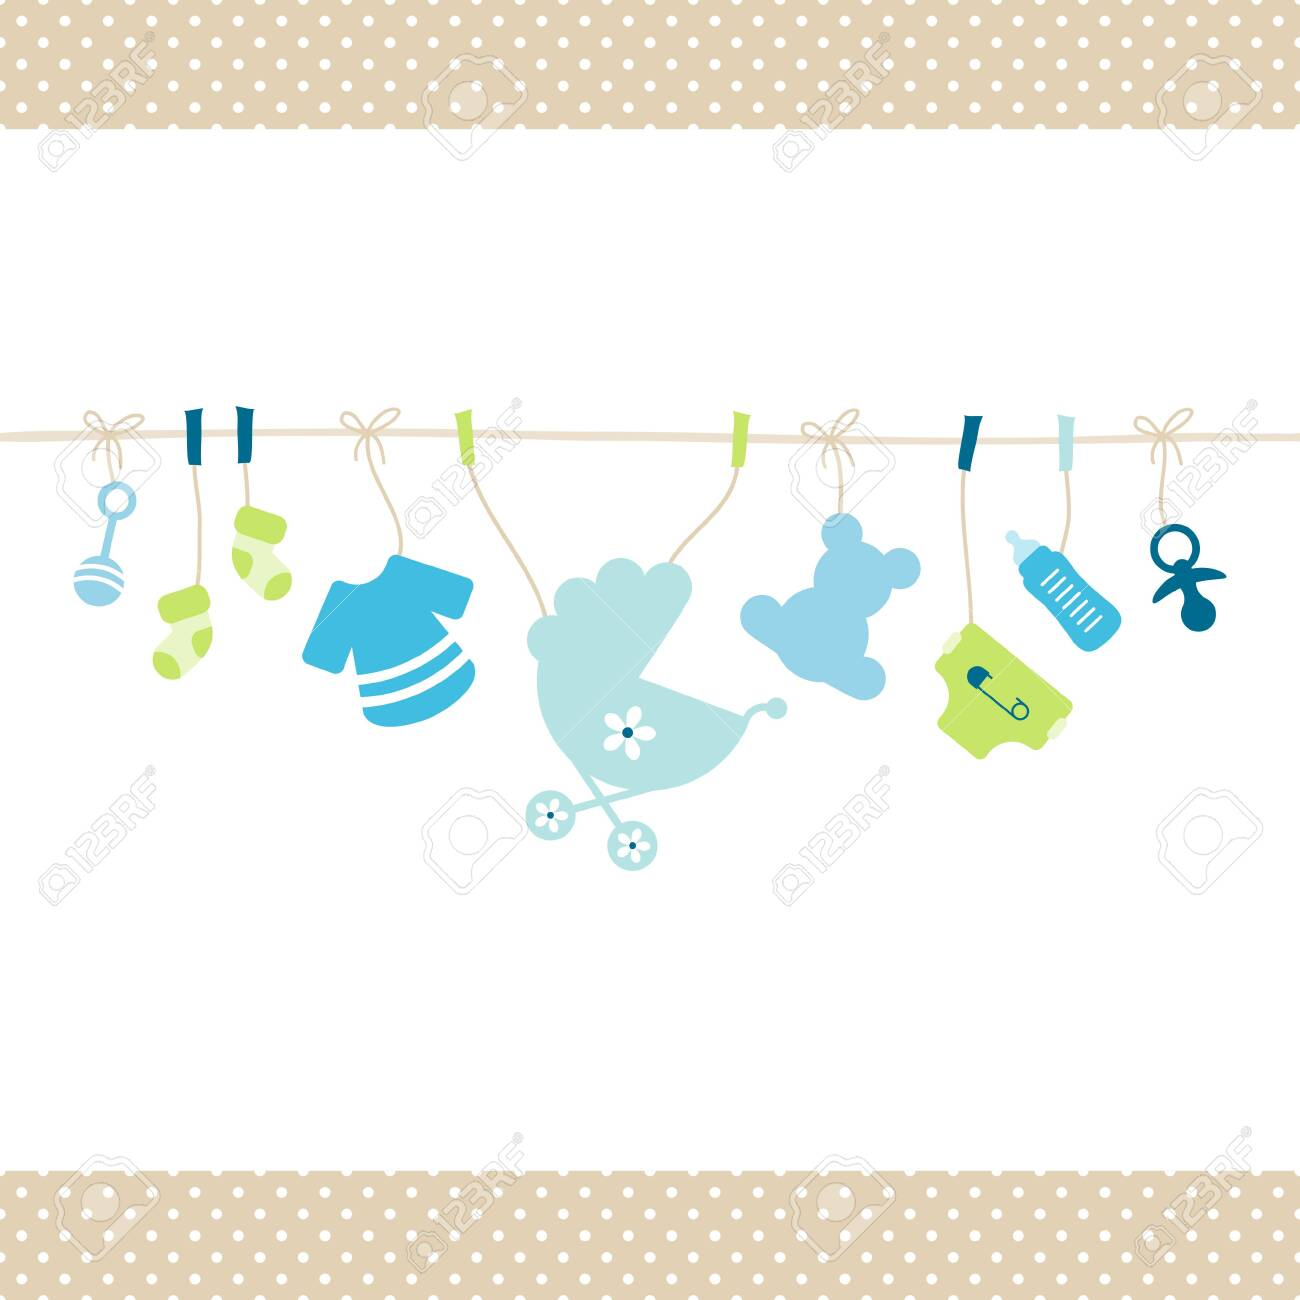 Hanging Baby Boy Icons Straight String Dots Border Beige - 125128210